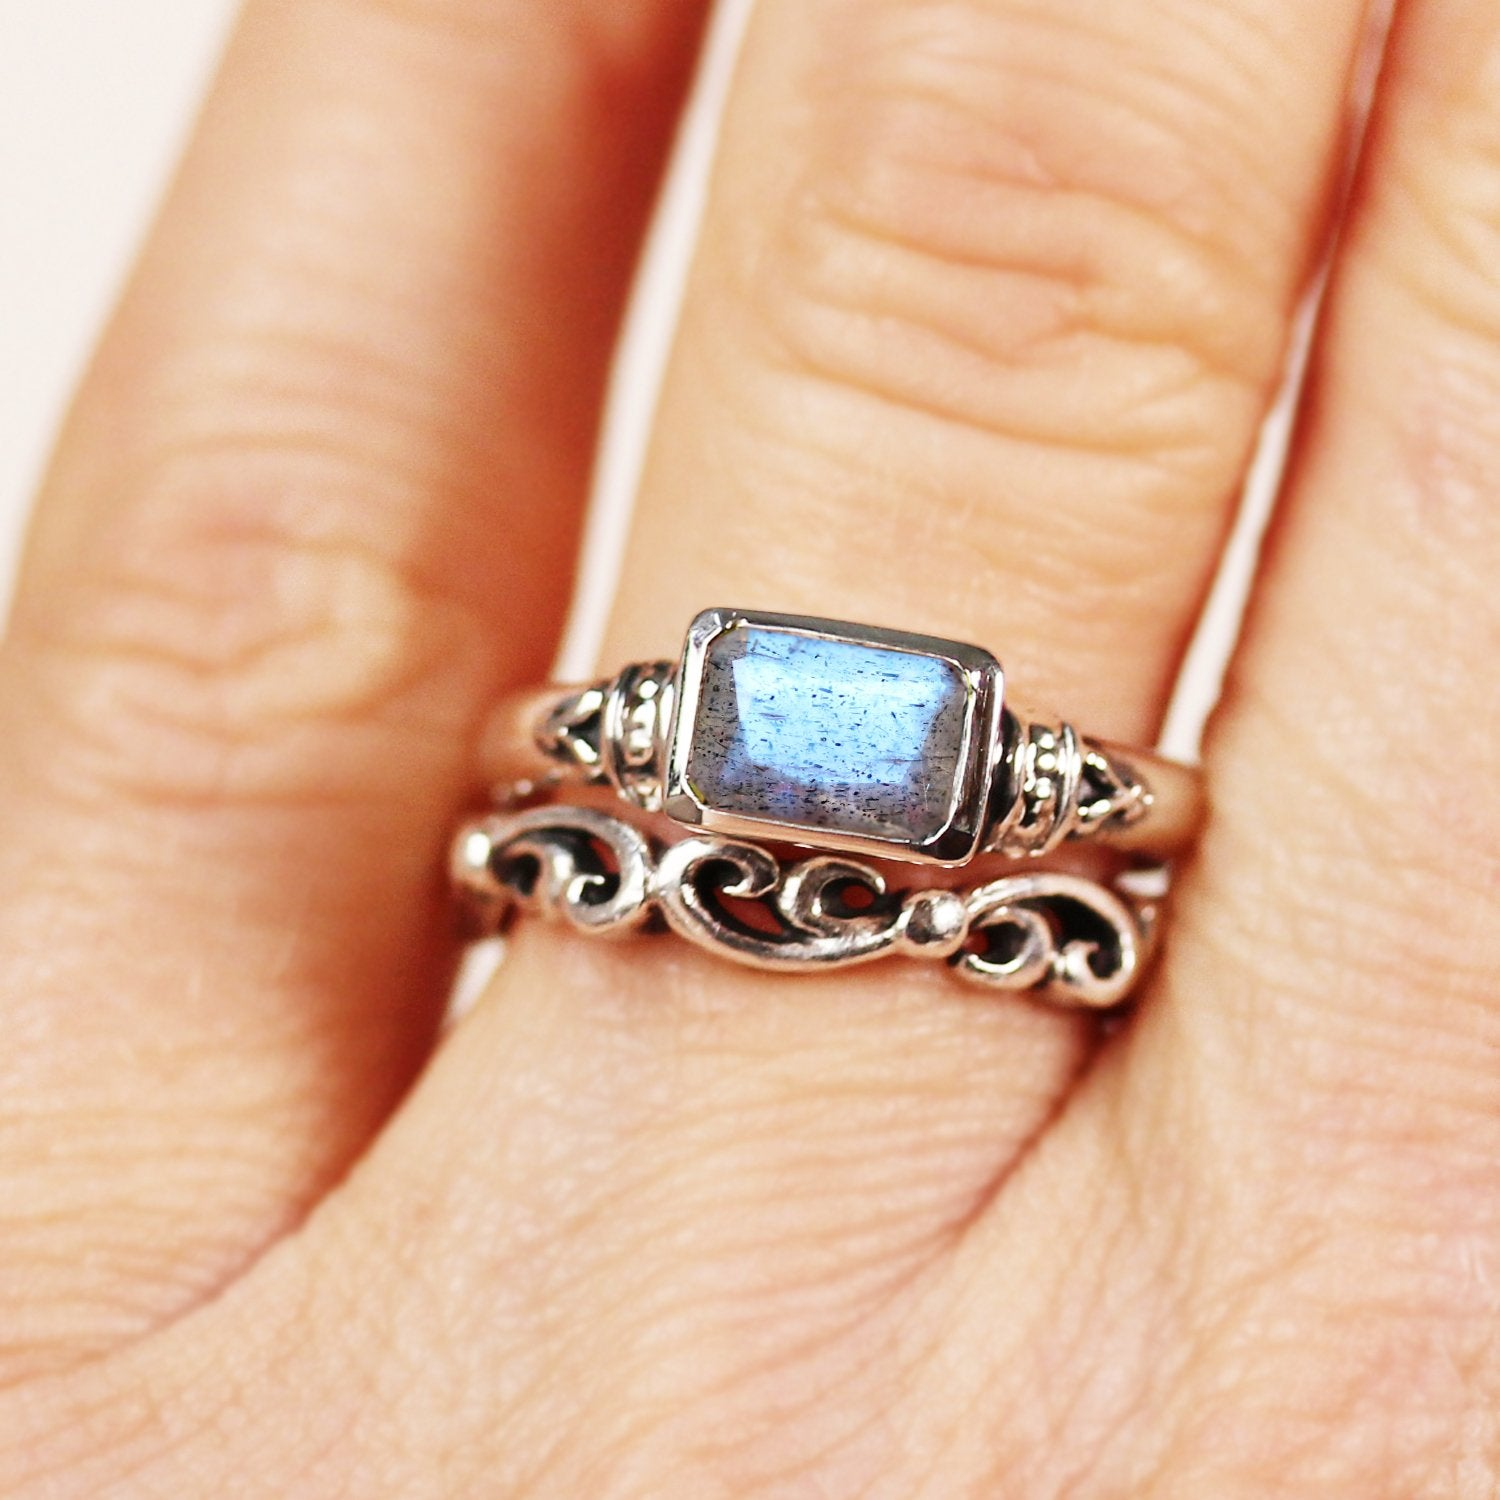 Labradorite, Emerald Cut Ring, Anne Brontë, Ready To Ship Size 6.5